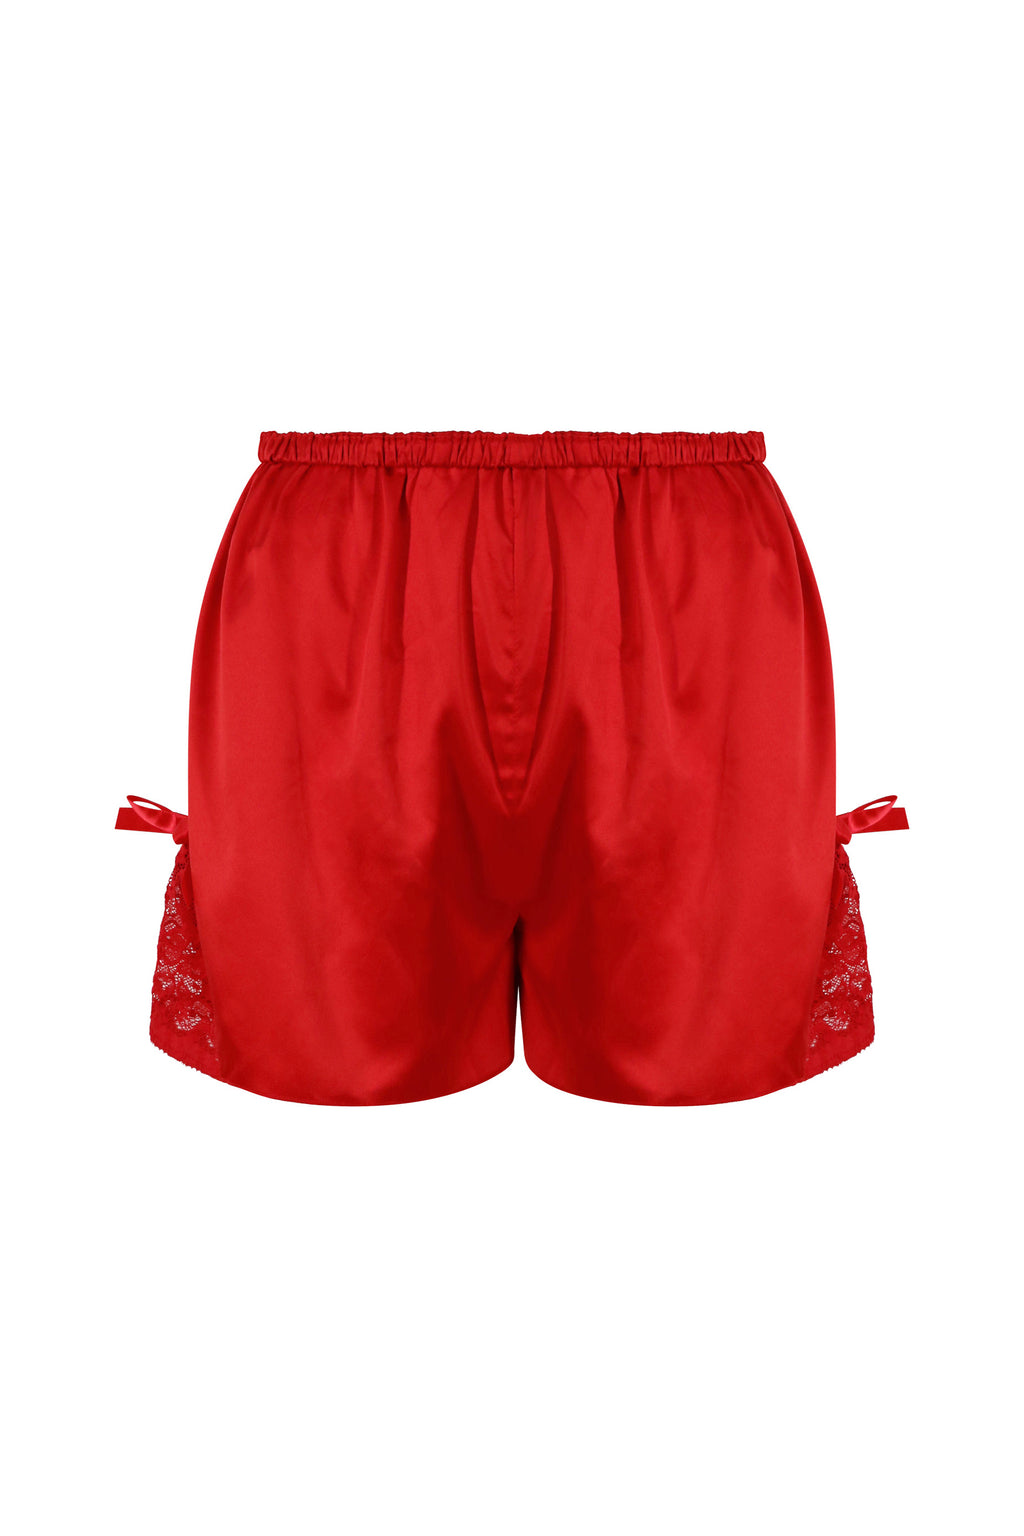 Red Satin Sleepwear Shorts